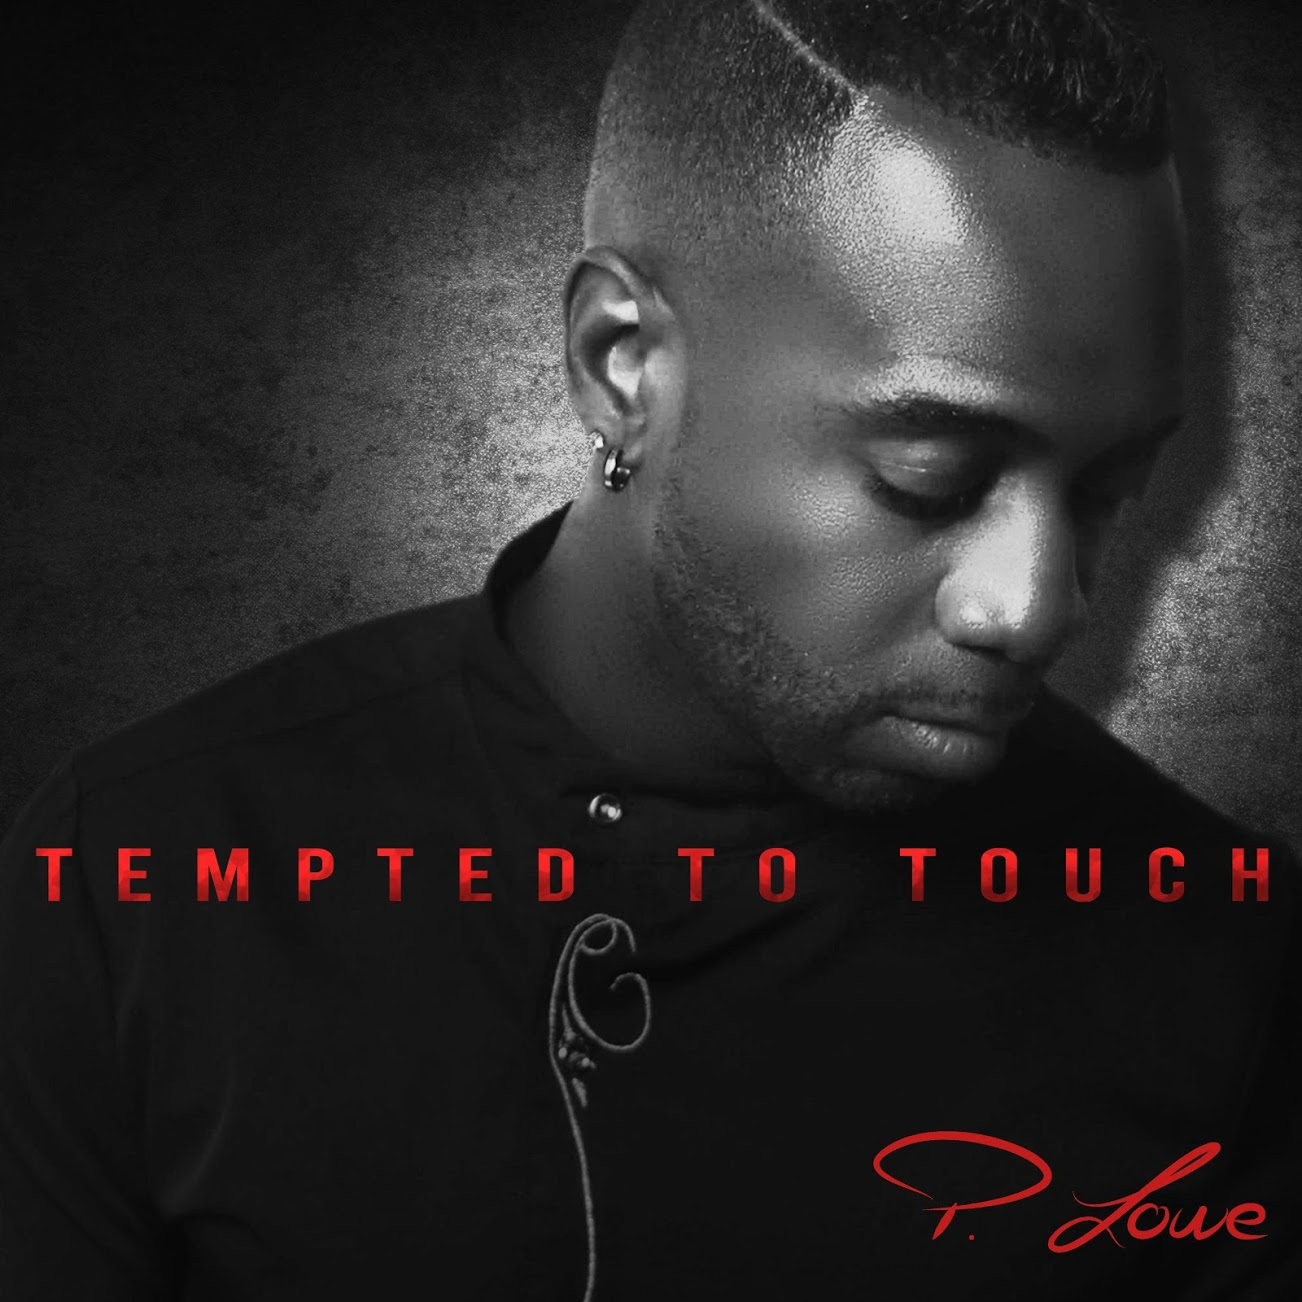 P. Lowe – Tempted to Touch (Download mp3 2020)